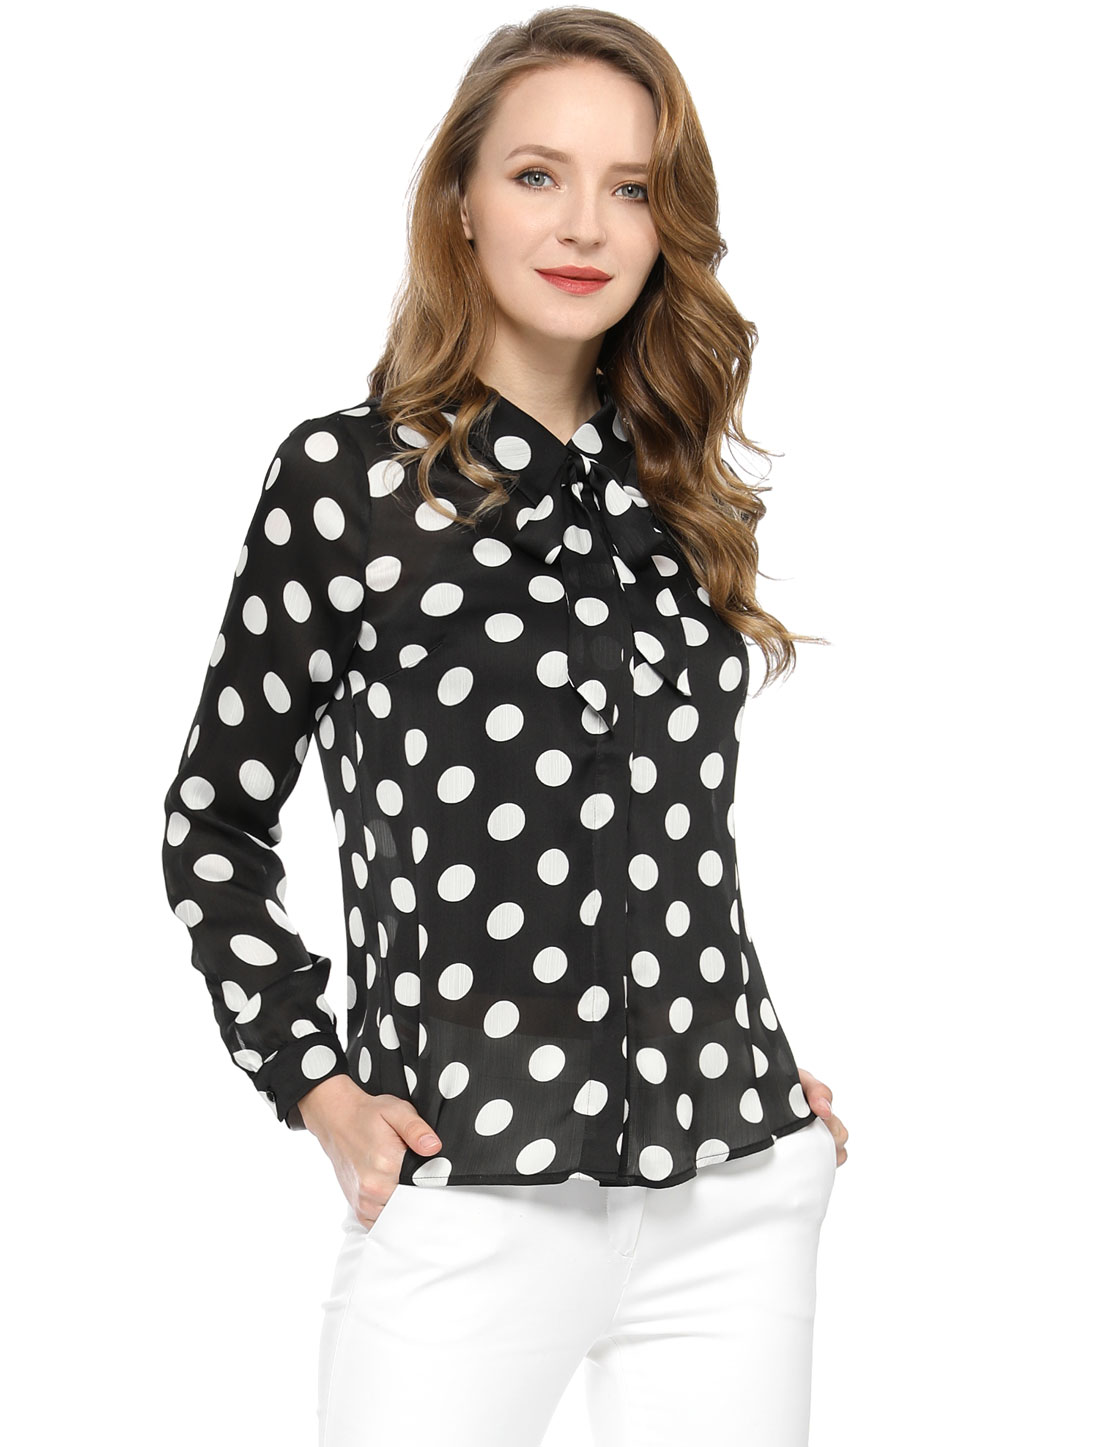 Allegra K Women's Tie Neck Blouse Button Down Polka Dot Shirt Black XS